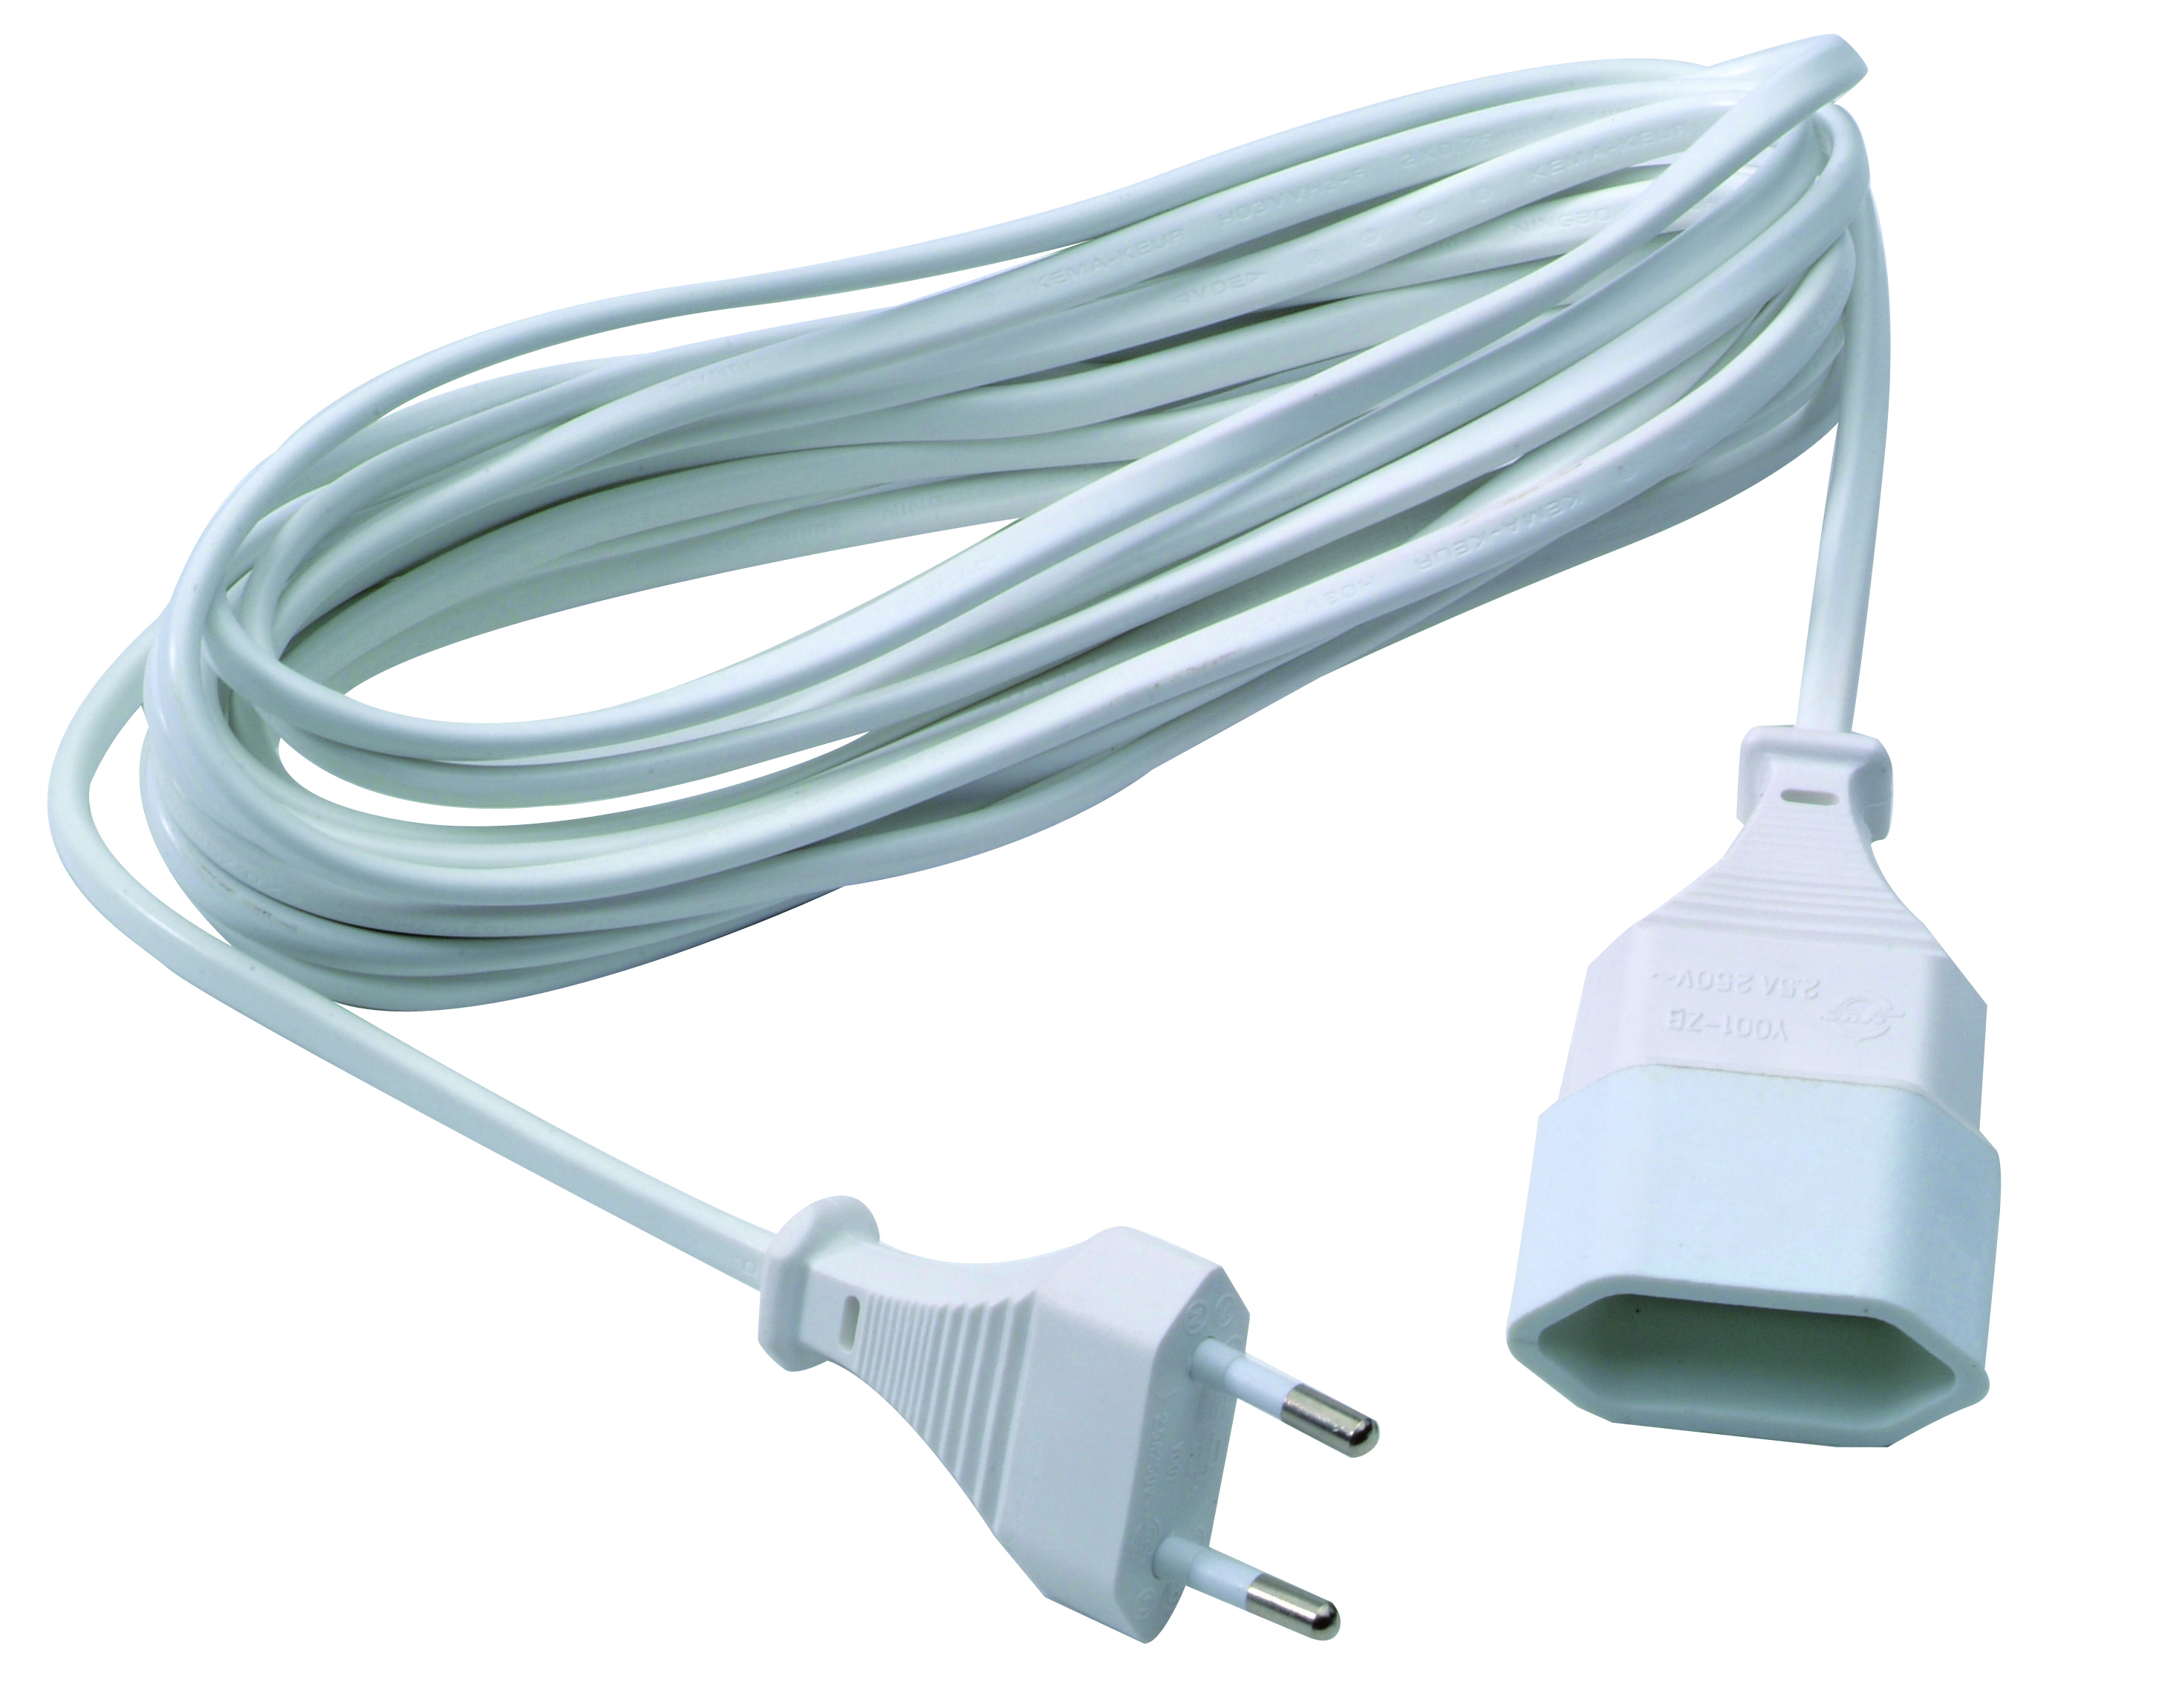 Extensions cord 2x0,75mm² PVC 5m white